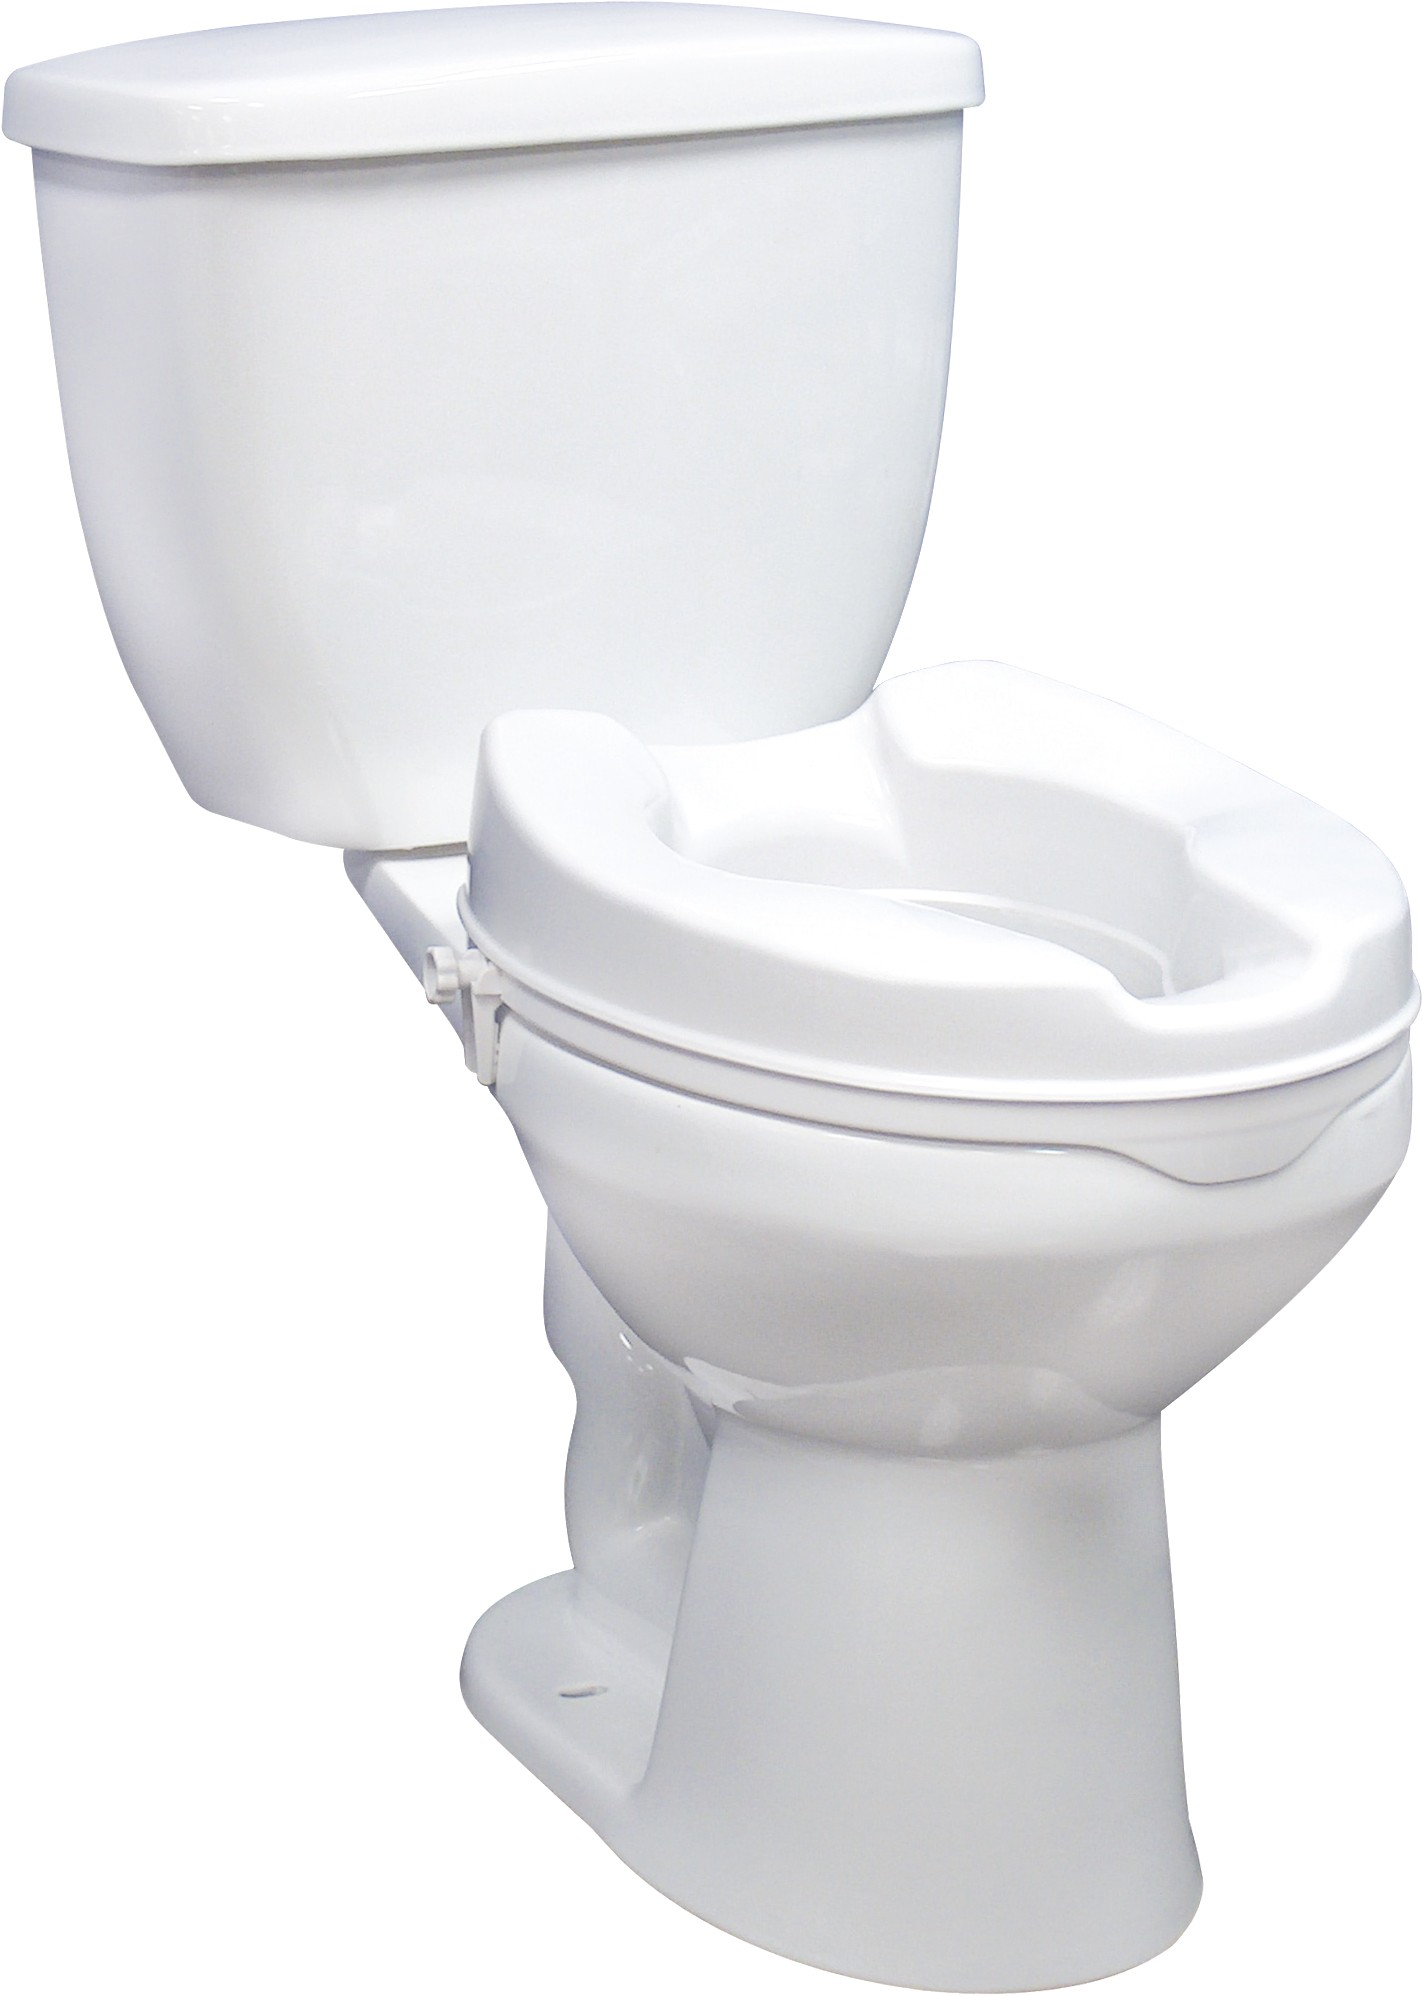 2 Raised Toilet Seat Without Lid By Drive Medical